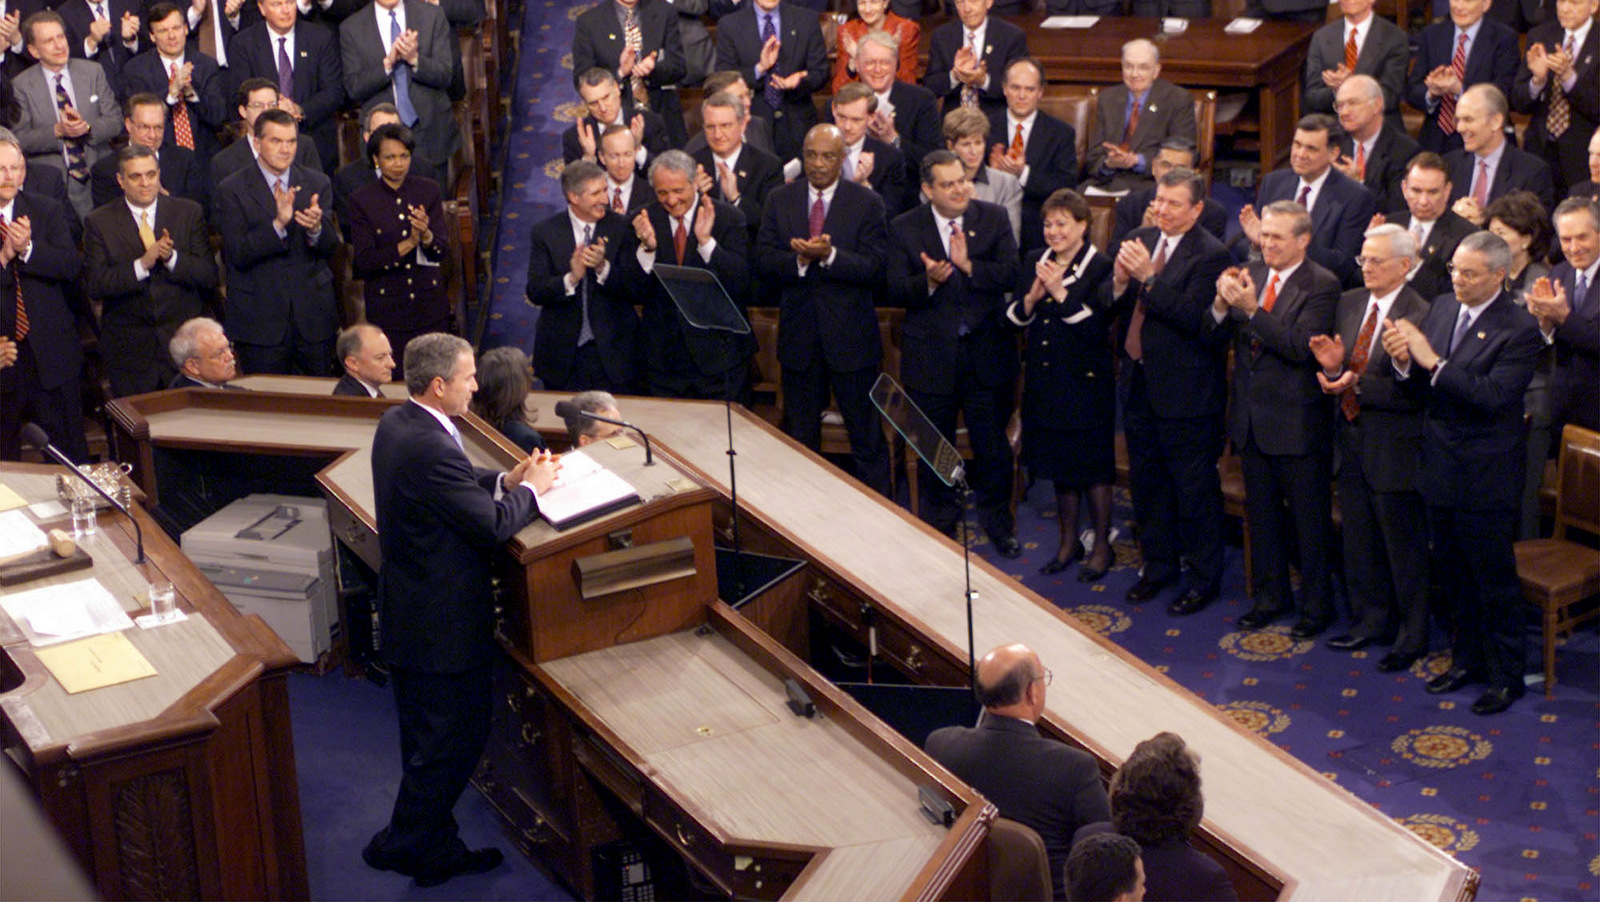 President Bush gives his State of the Union address on Capitol Hill Tuesday, Jan. 29, 2002. Bush fleshed out his vision for the war on terrorism beyond Afghanistan, to a dozen countries that he said harbor terrorists and